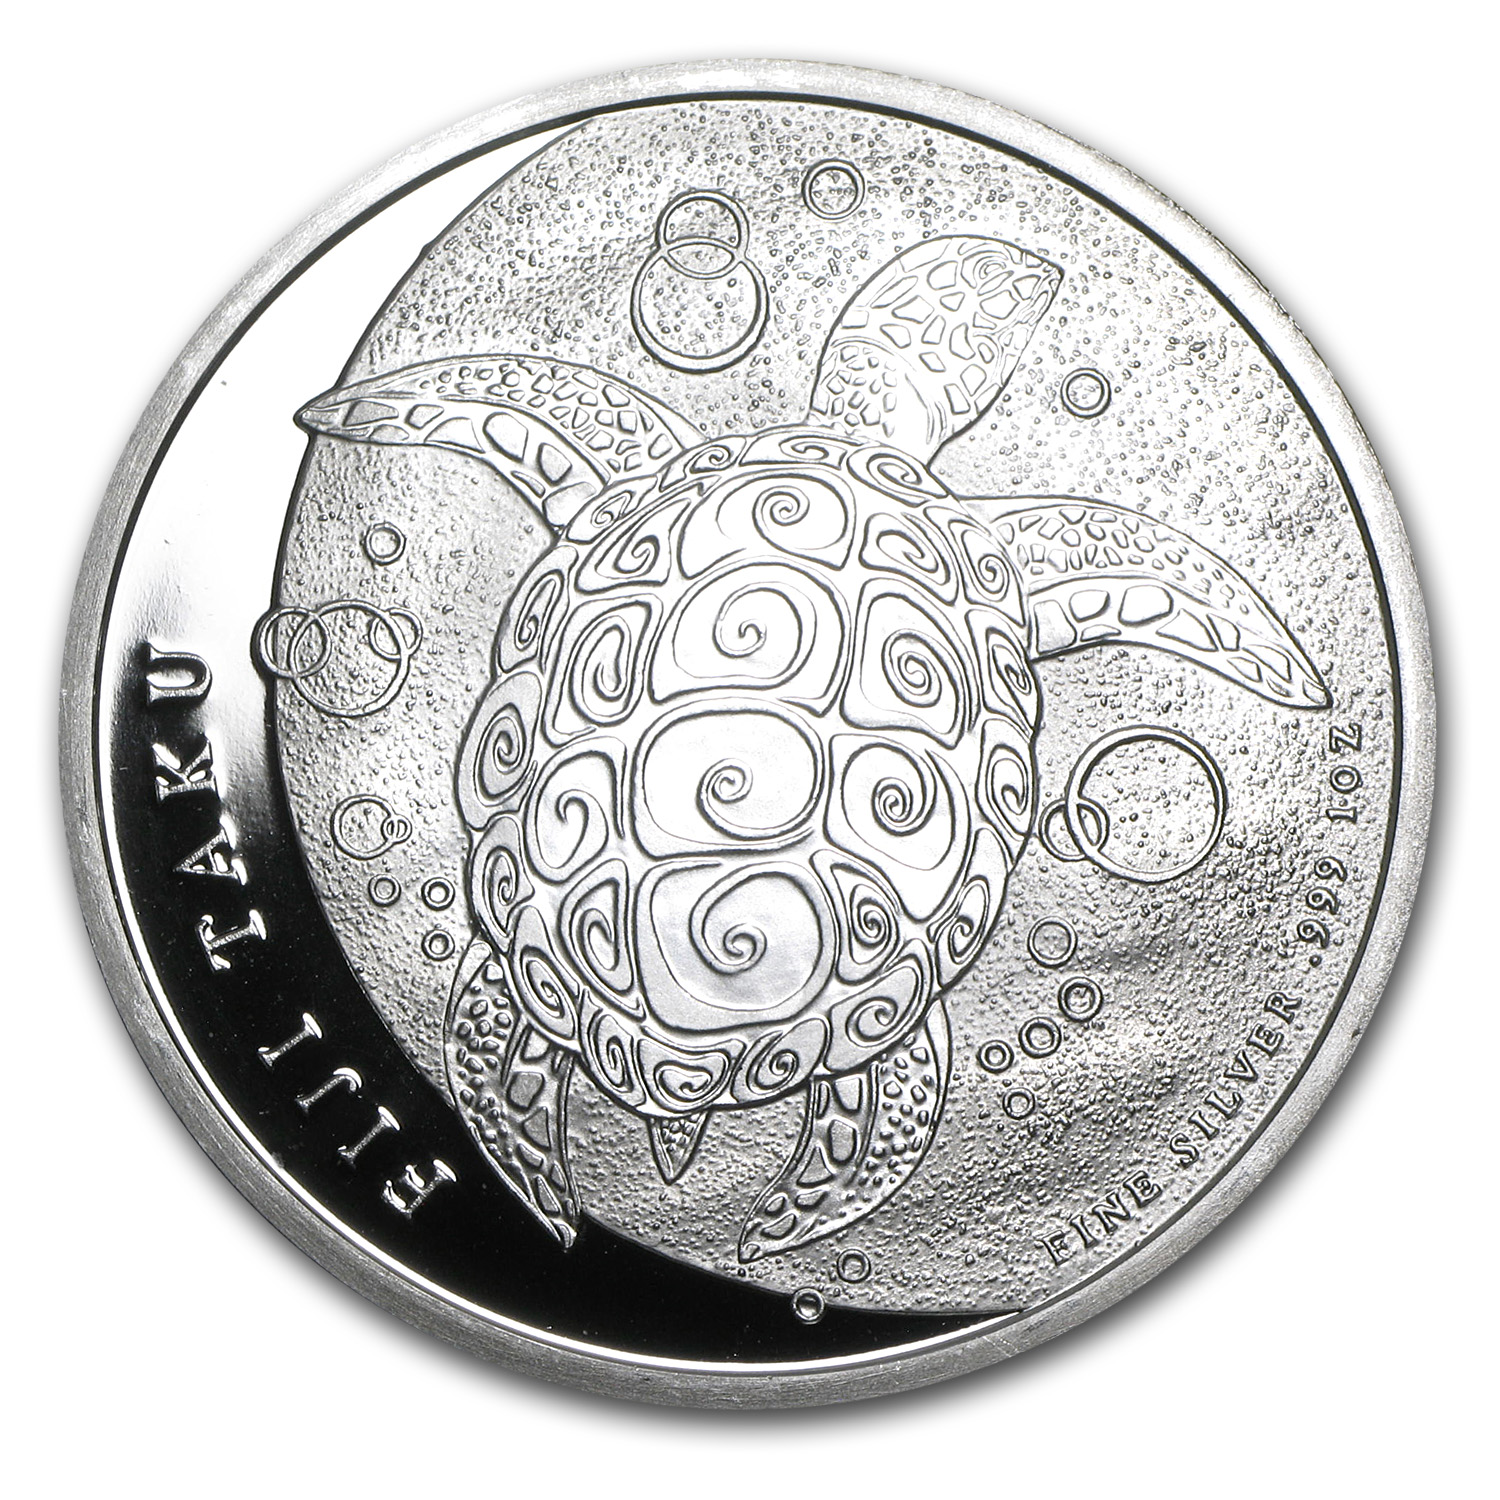 2011 1 oz Silver New Zealand Mint $2 Fiji Taku